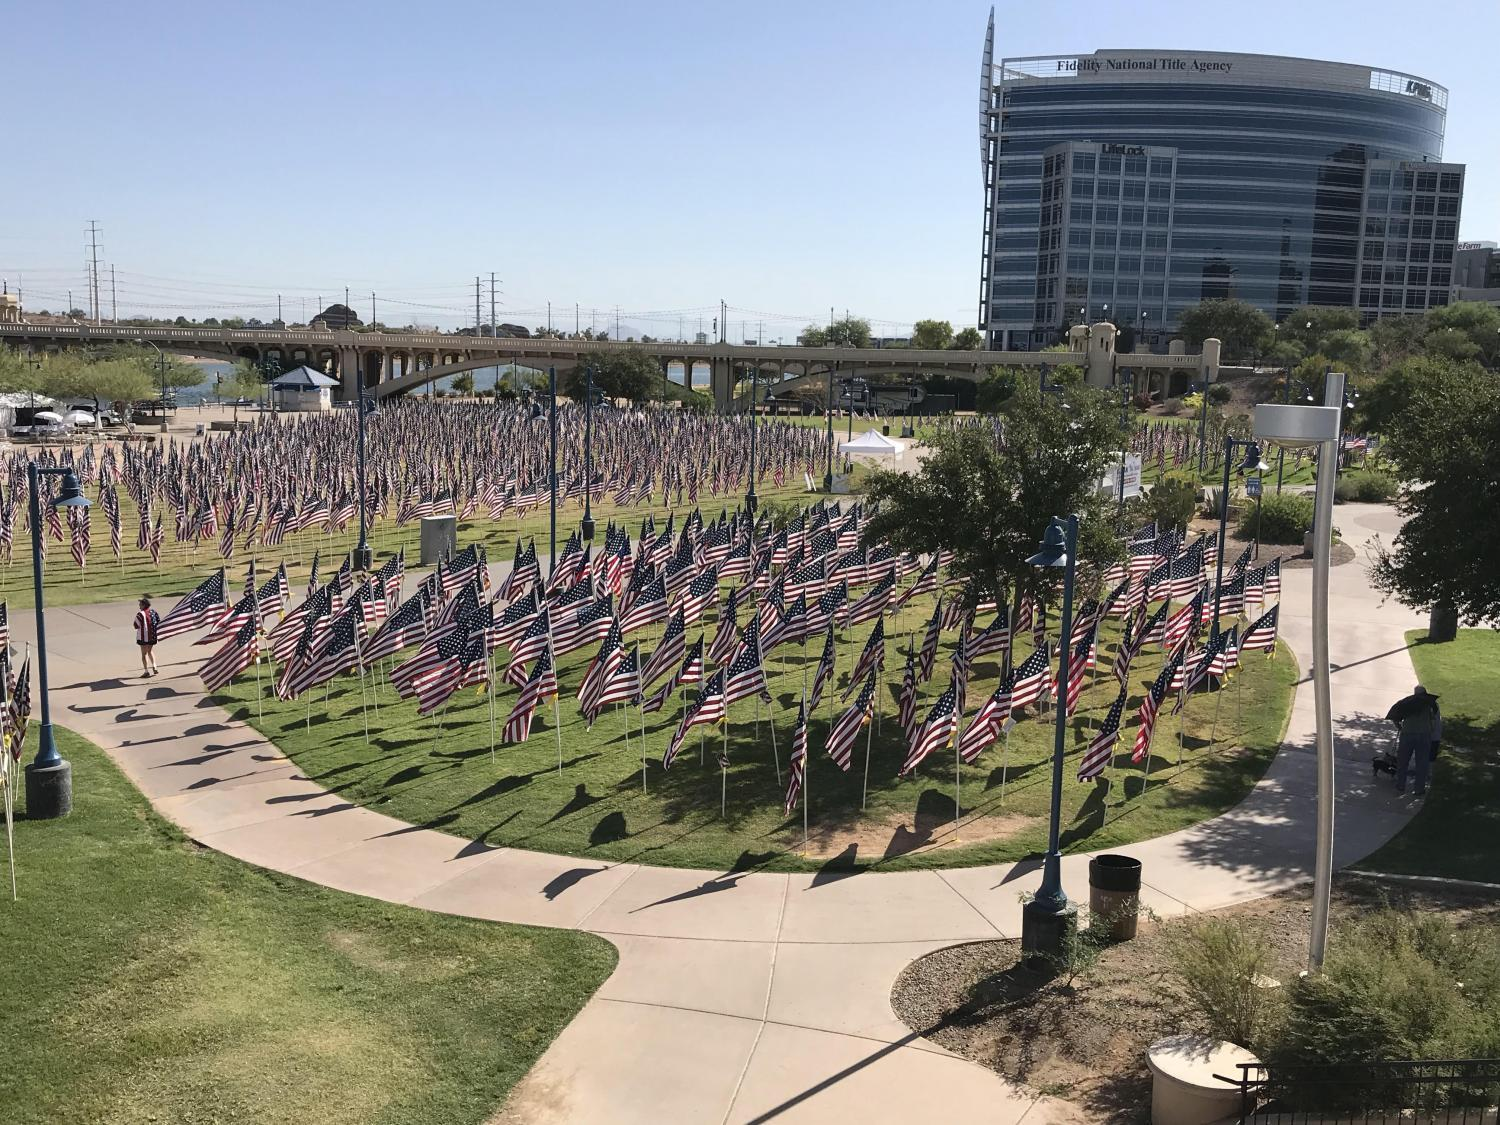 Flags displayed at Tempe Healing Field for a 9/11 memorial.